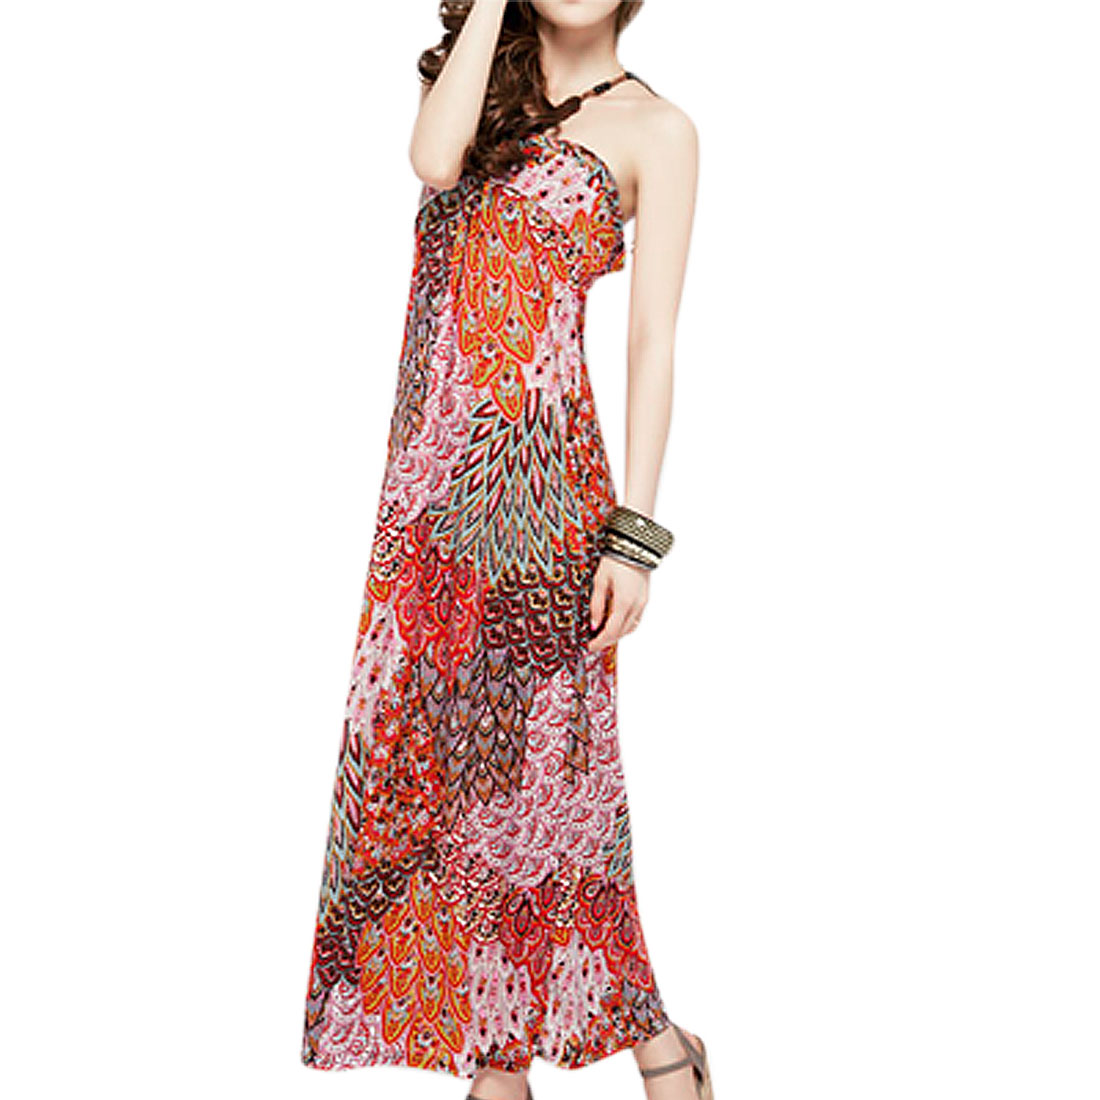 Unique Bargains Women Sleeveless Peacock Print Beaded Halter Long Dress Multi-Color S at Sears.com